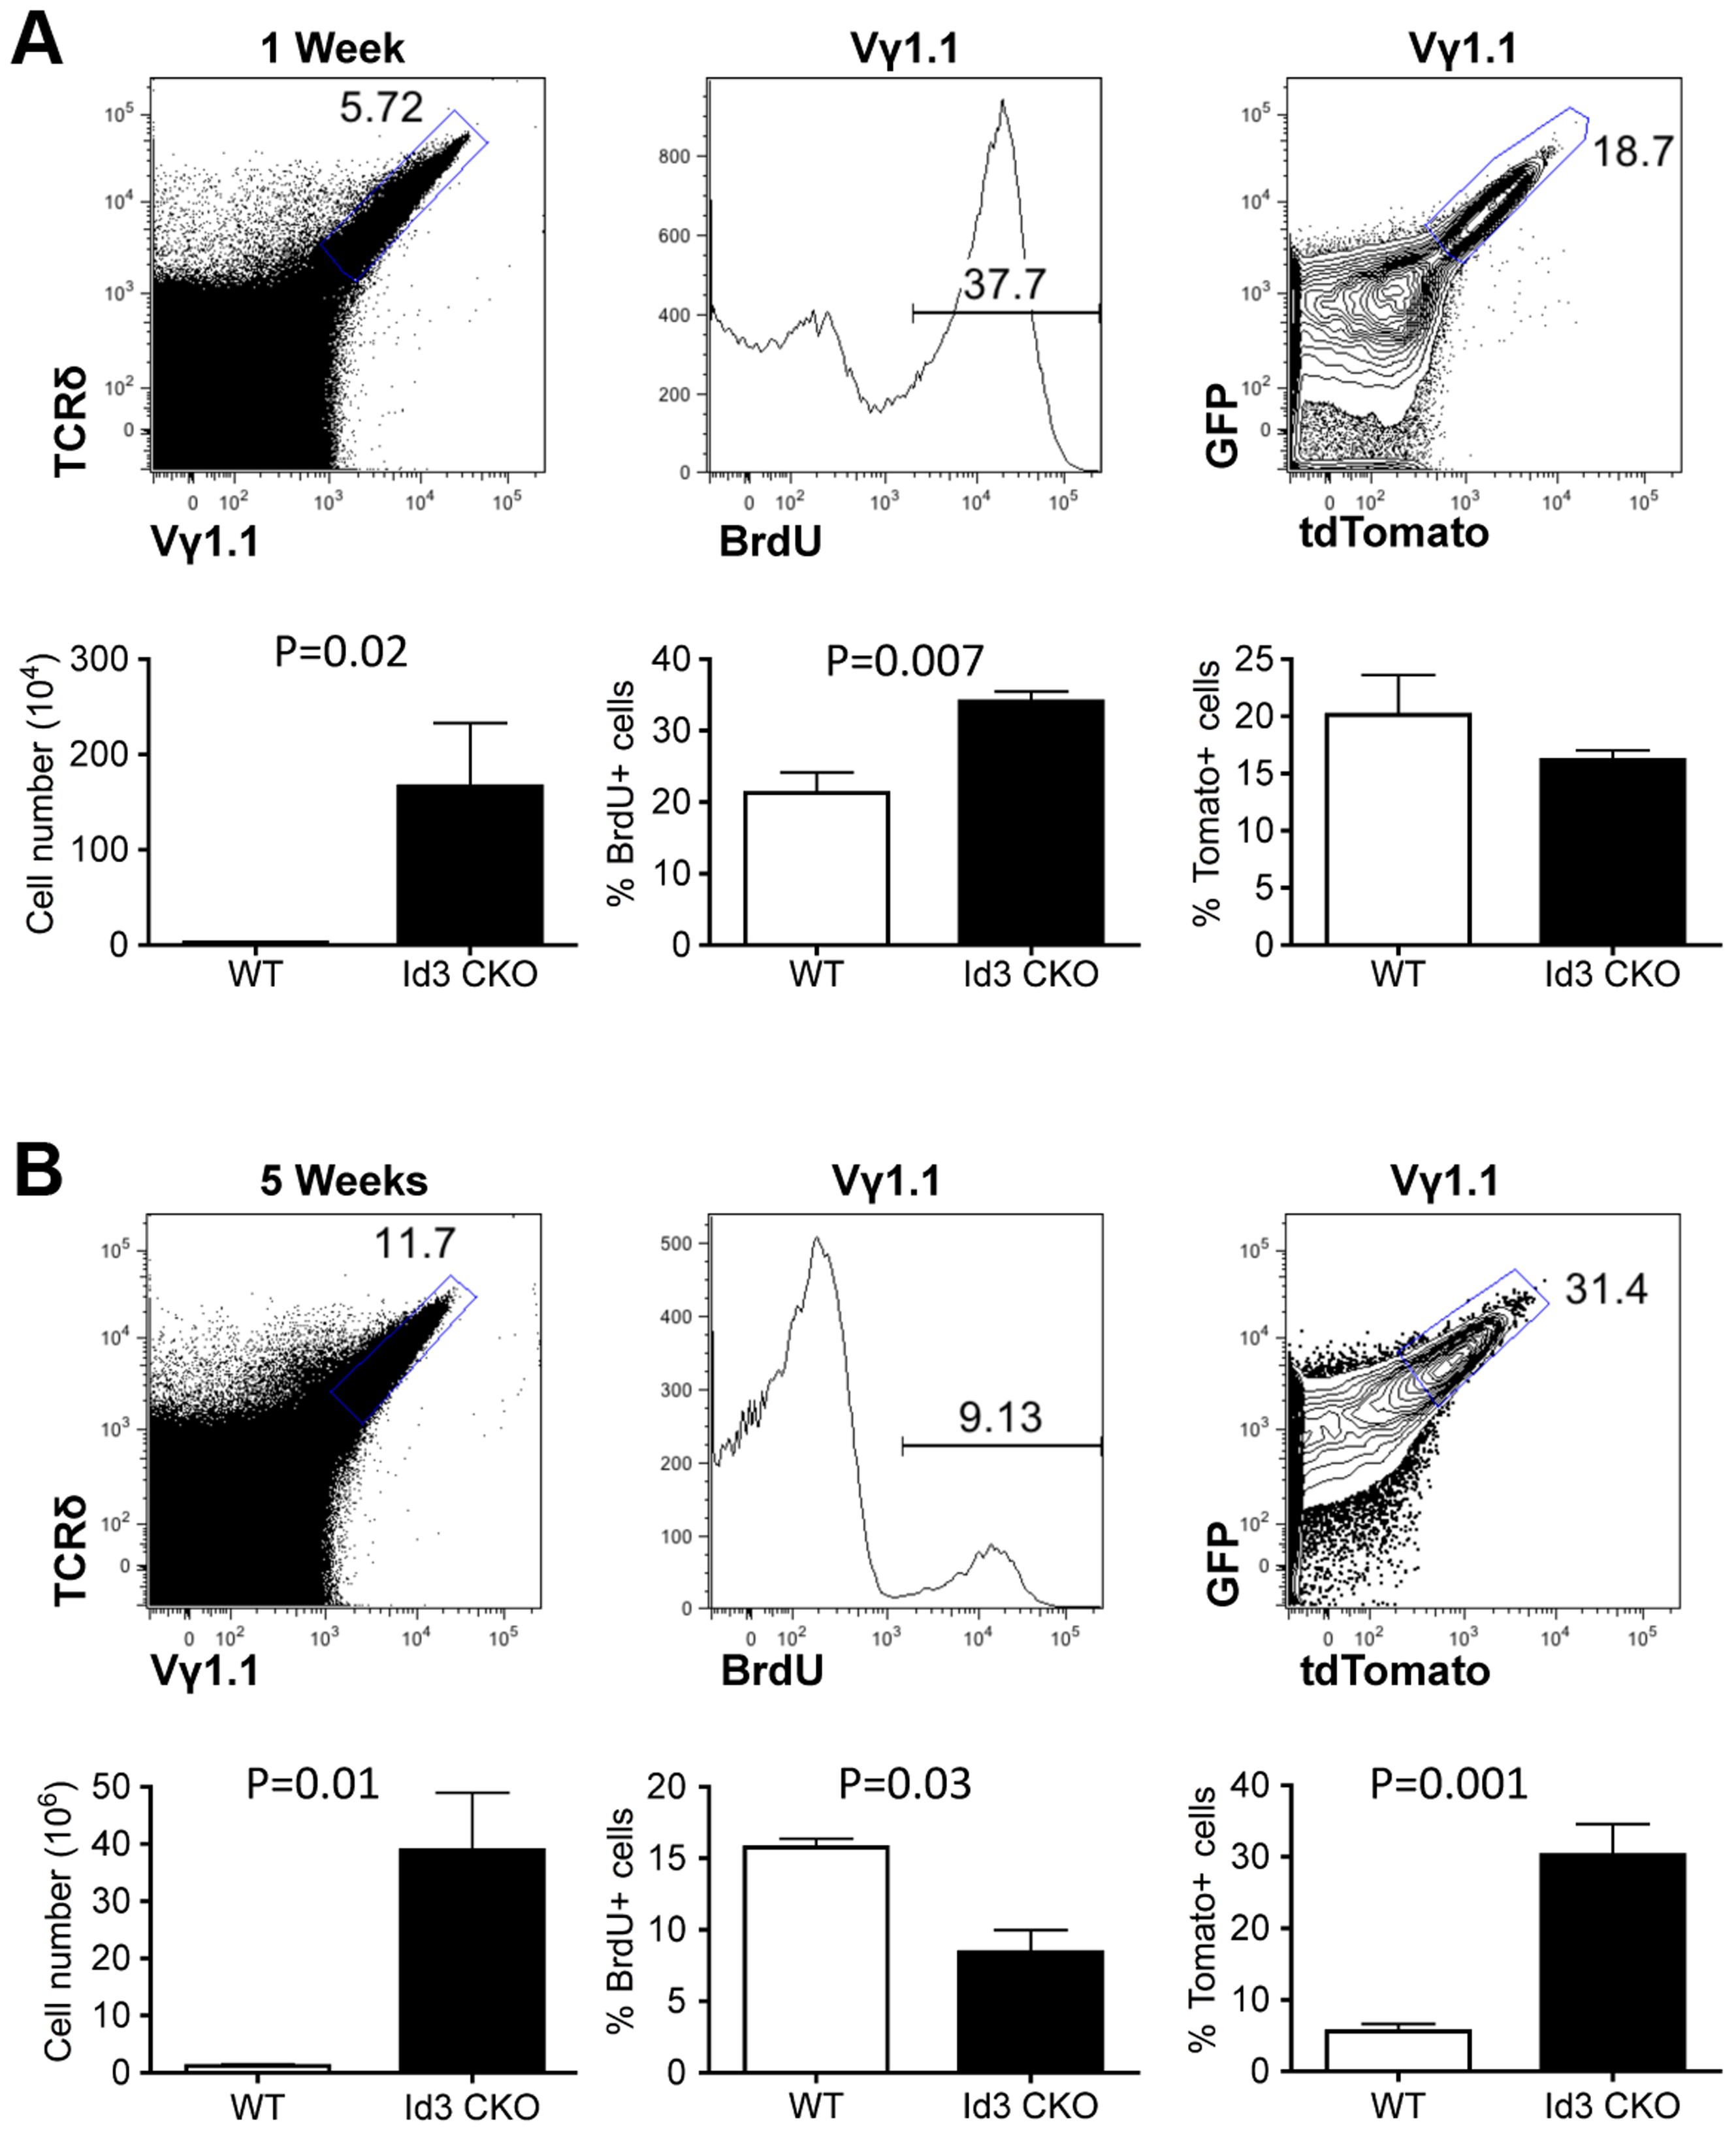 Assessing proliferation frequency and history of Vγ1.1 T cells on <i>Id3</i> deficient background.